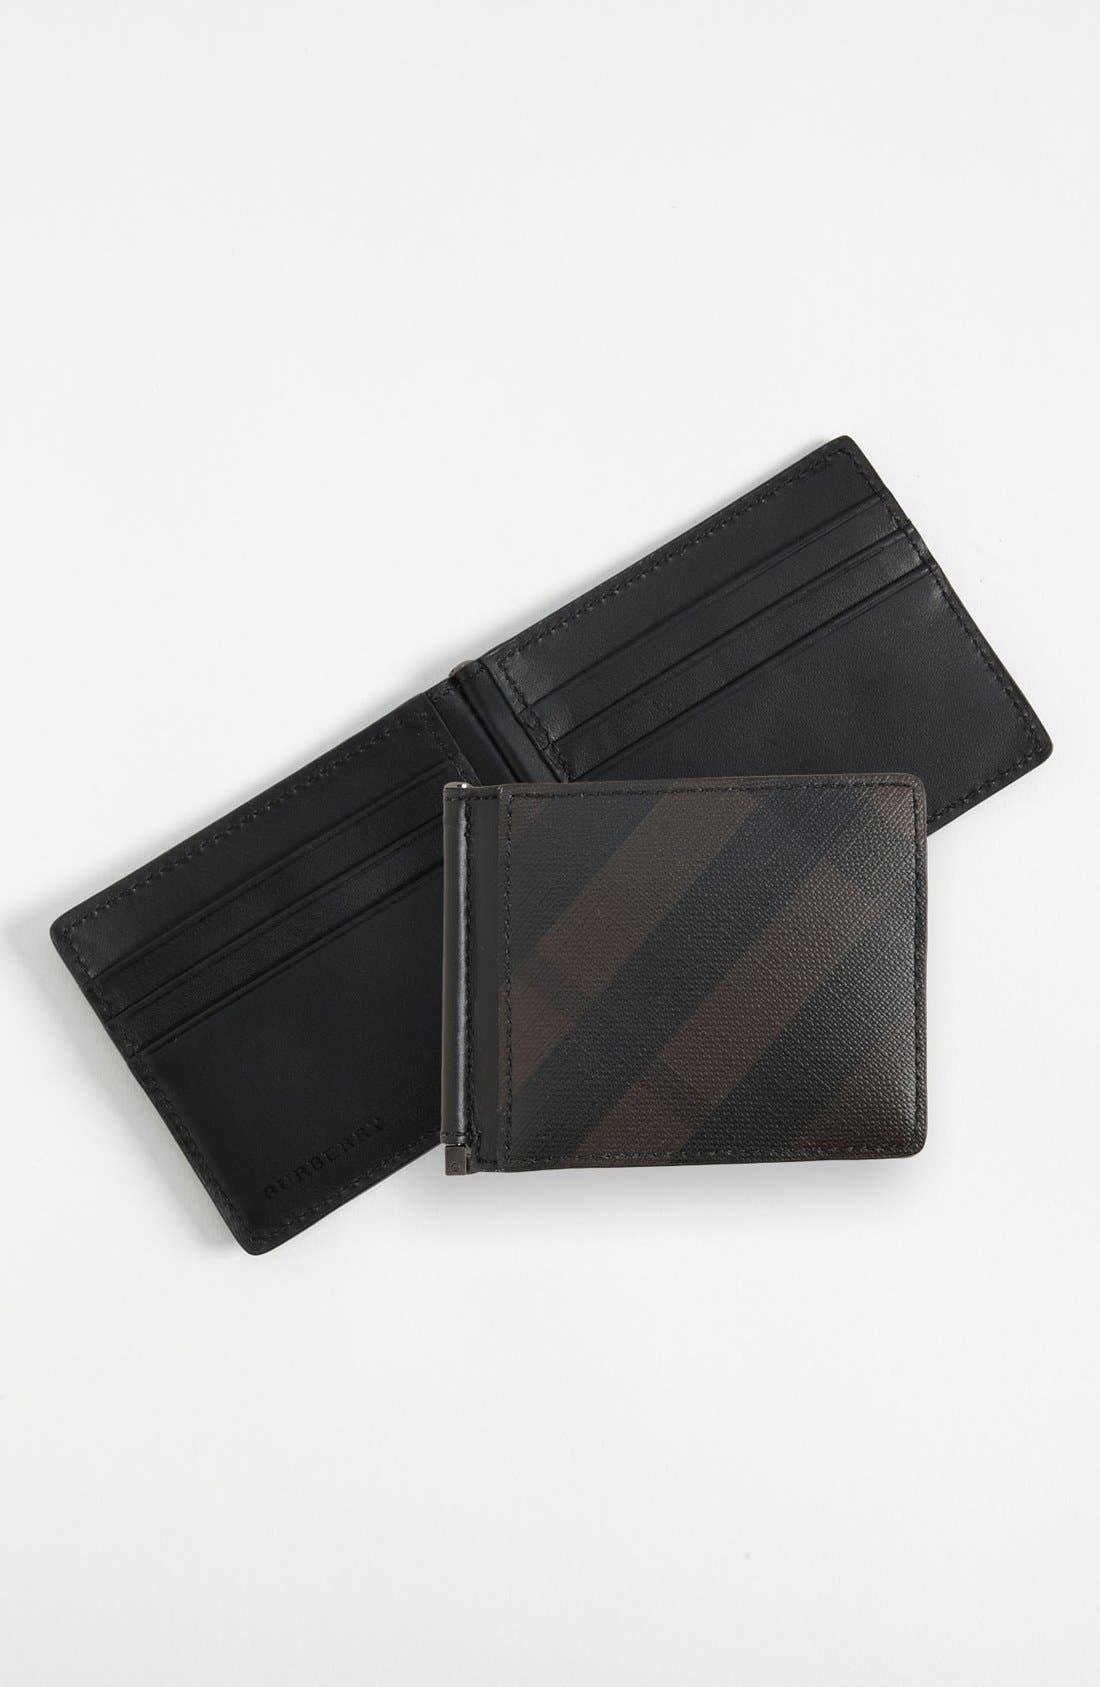 Main Image - Burberry 'Quillen' Wallet